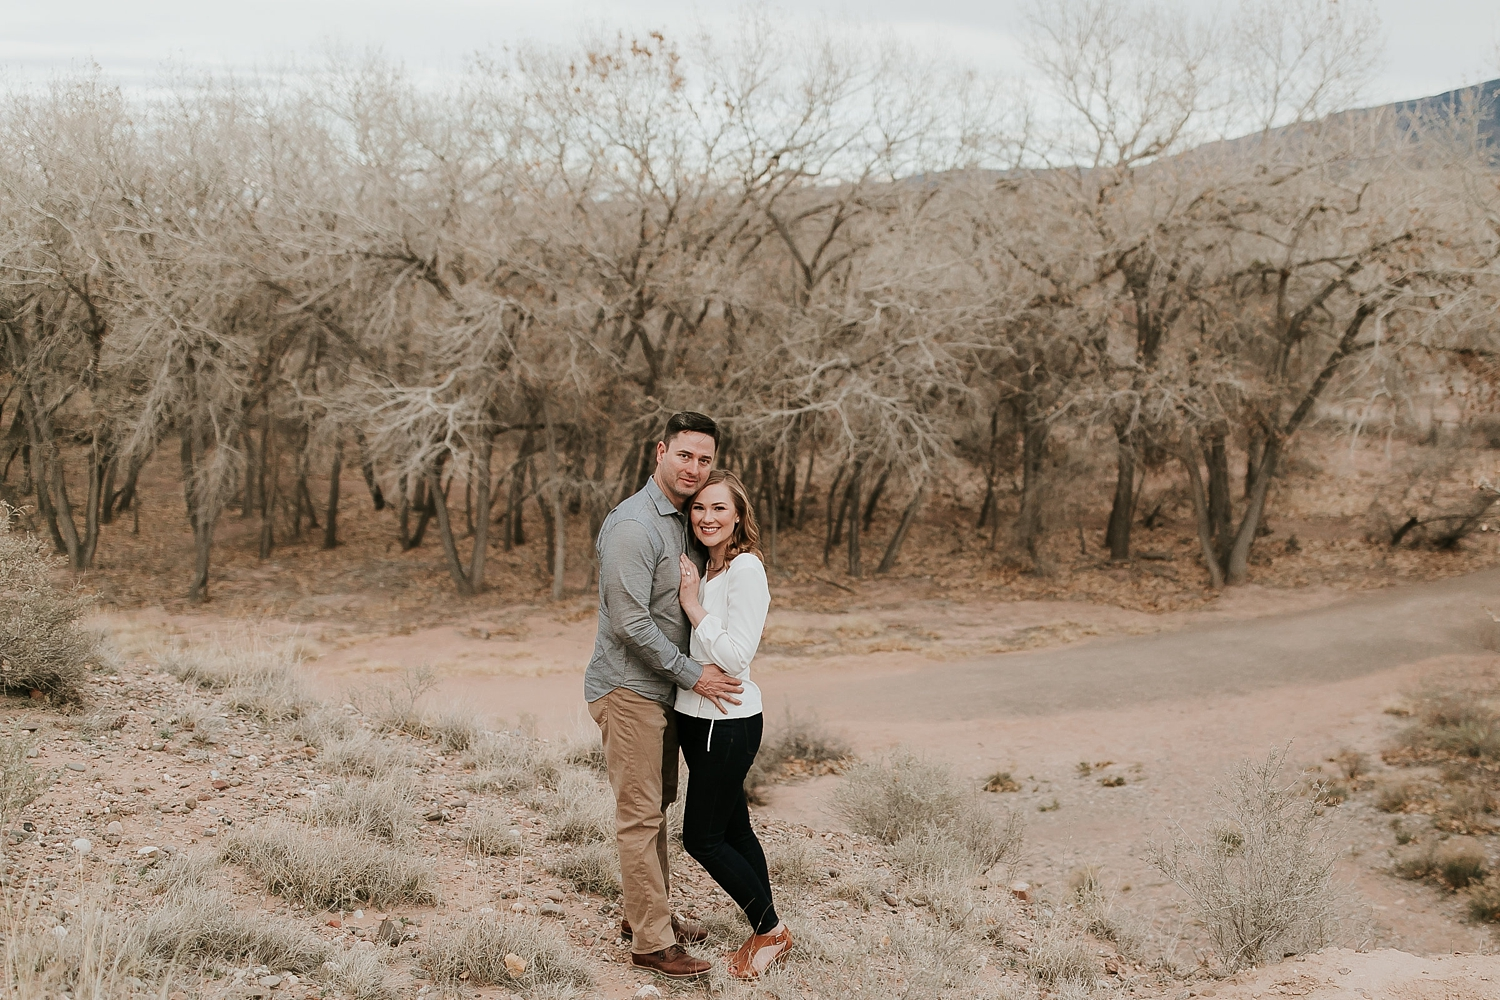 Alicia+lucia+photography+-+albuquerque+wedding+photographer+-+santa+fe+wedding+photography+-+new+mexico+wedding+photographer+-+new+mexico+engagement+-+albuquerque+engagement+-+spring+new+mexico+engagement+-+bosque+engagement_0005.jpg